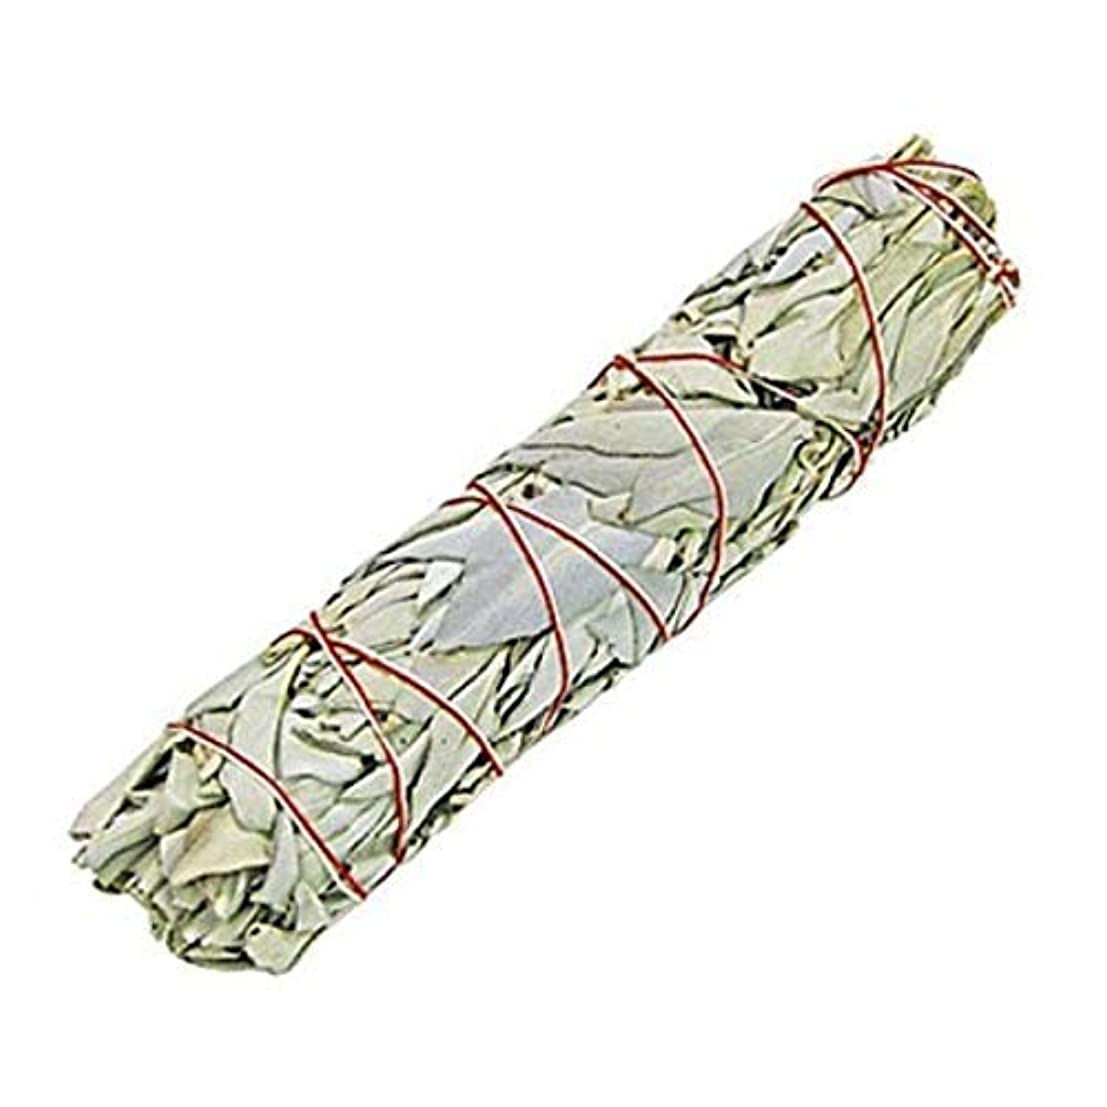 若者効能報奨金Indian White Sage Smudge Sticks, 6 Inch Long, Home Cleansing, Blessing, Manifesting, 1 Sticks (100 Grams)